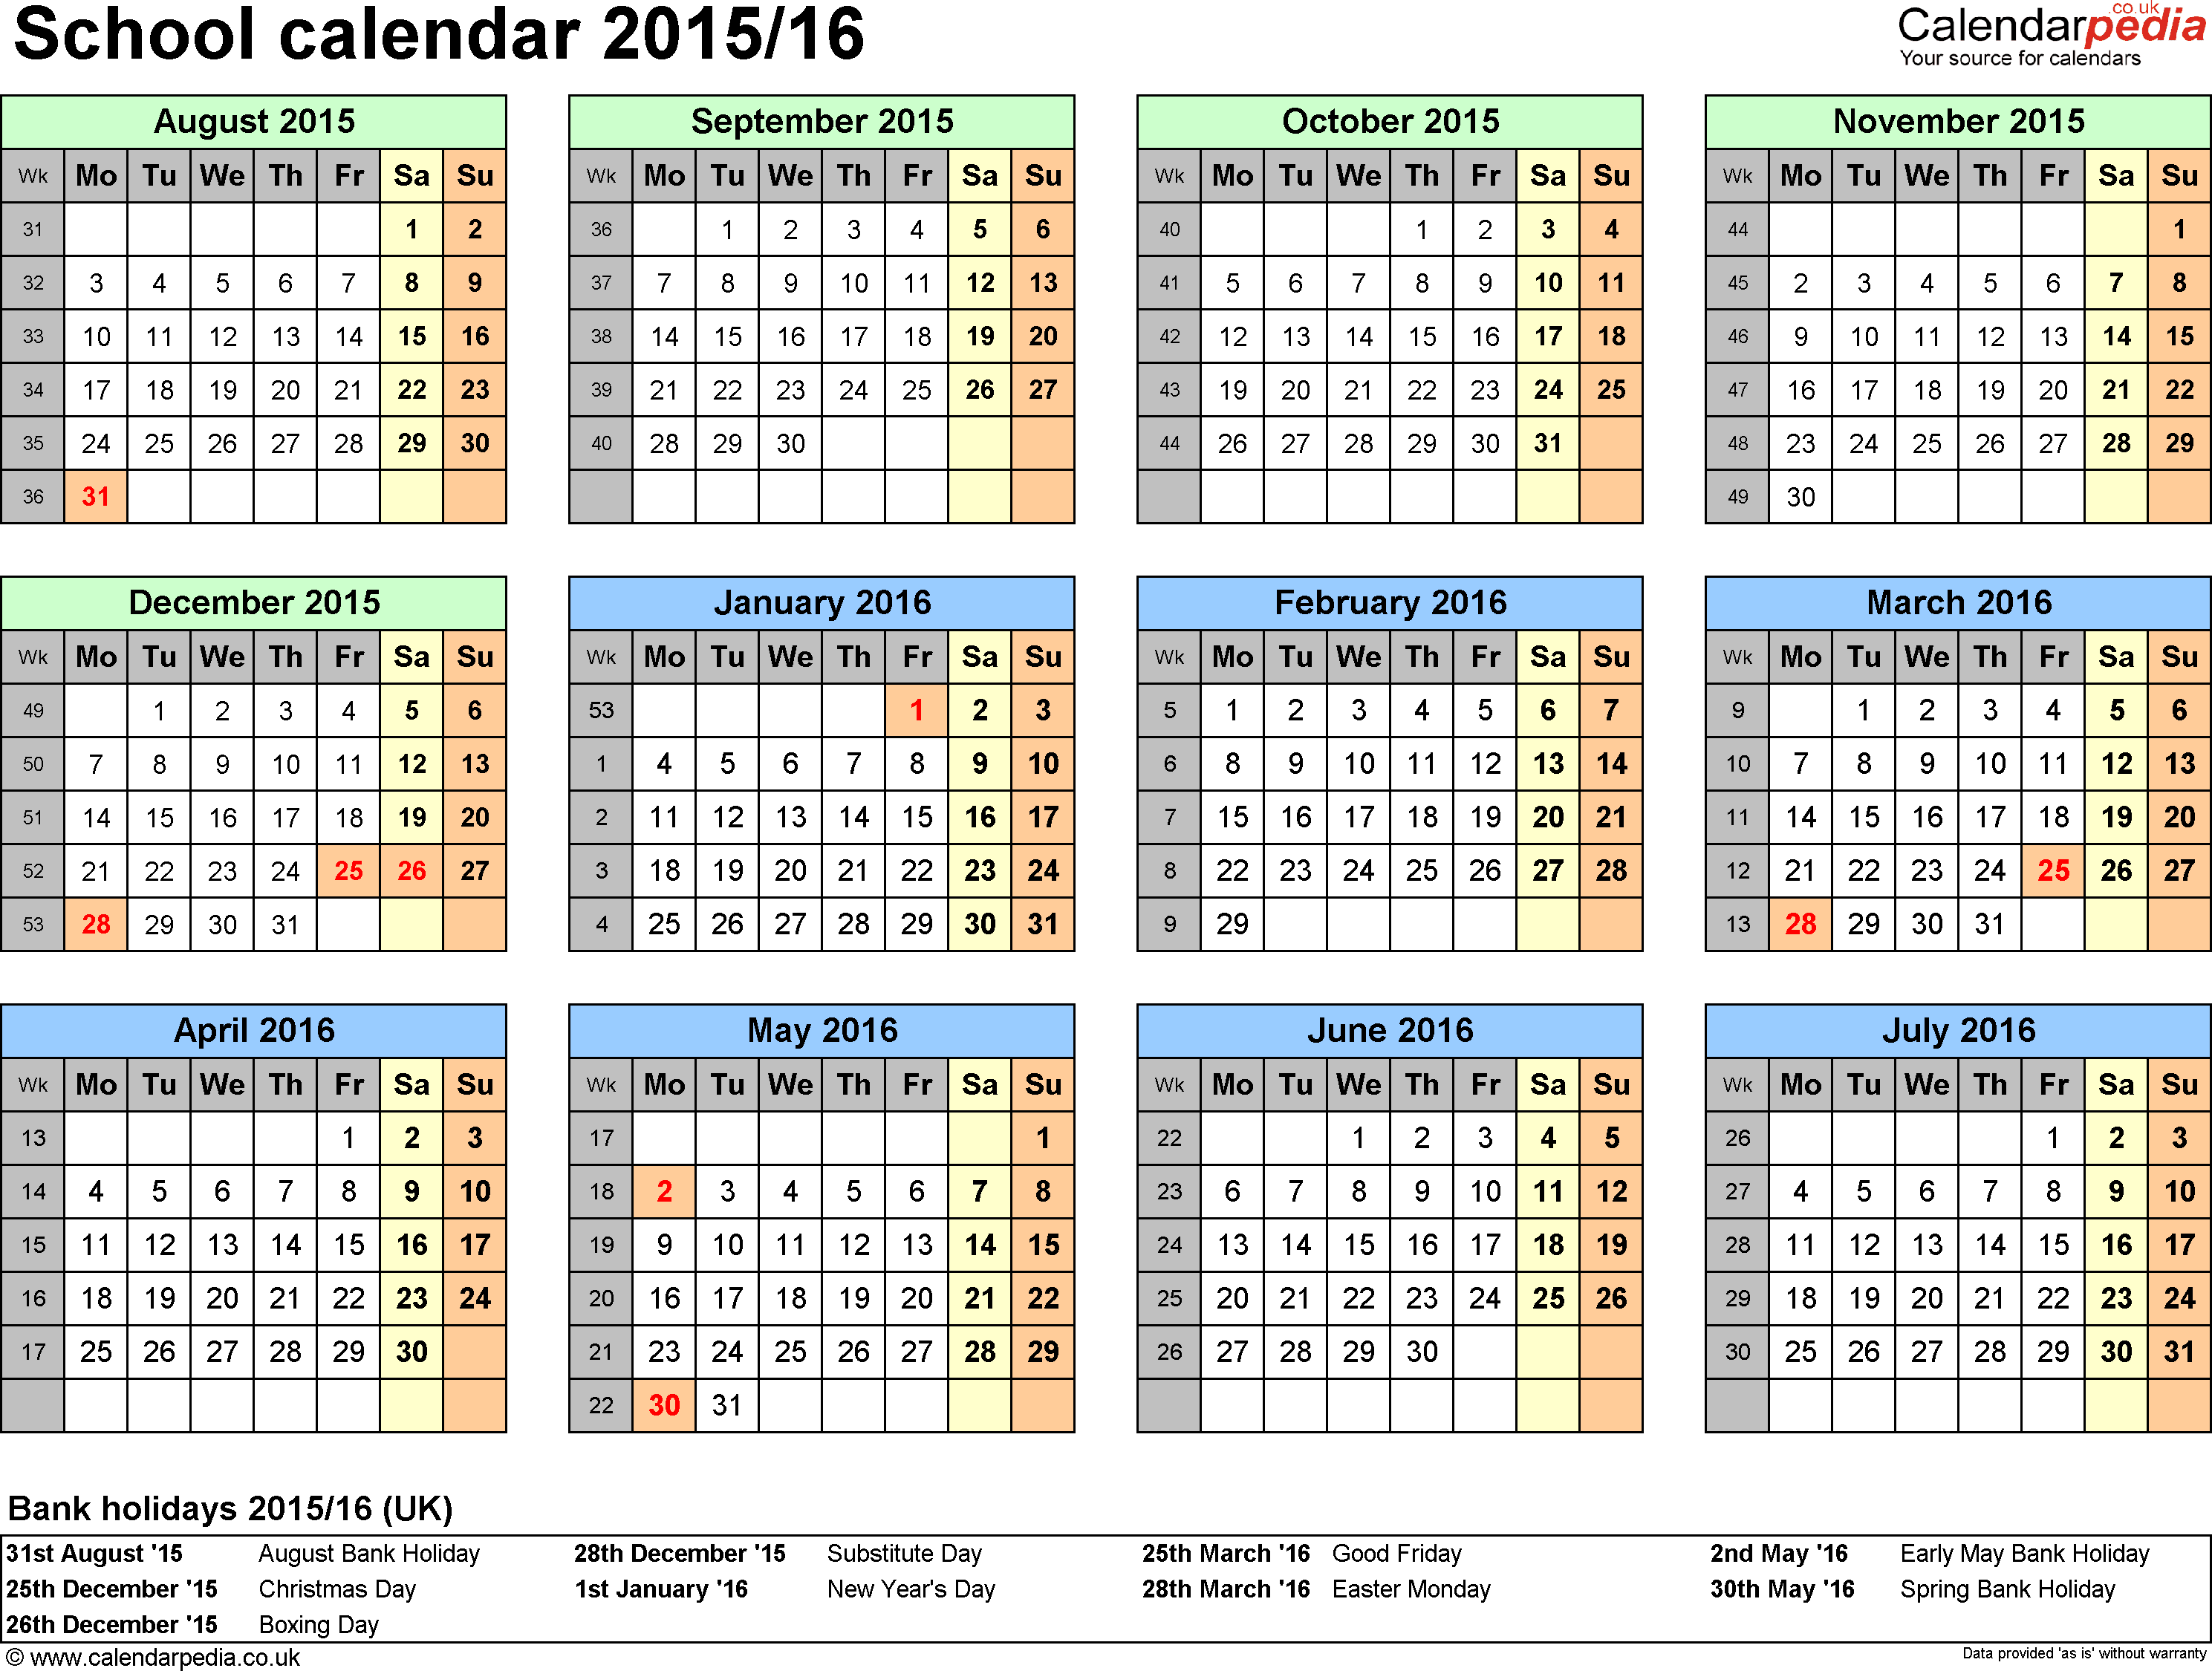 Download Template 4: School year calendars 2015/16 for Microsoft Word, year at a glance, 1 page